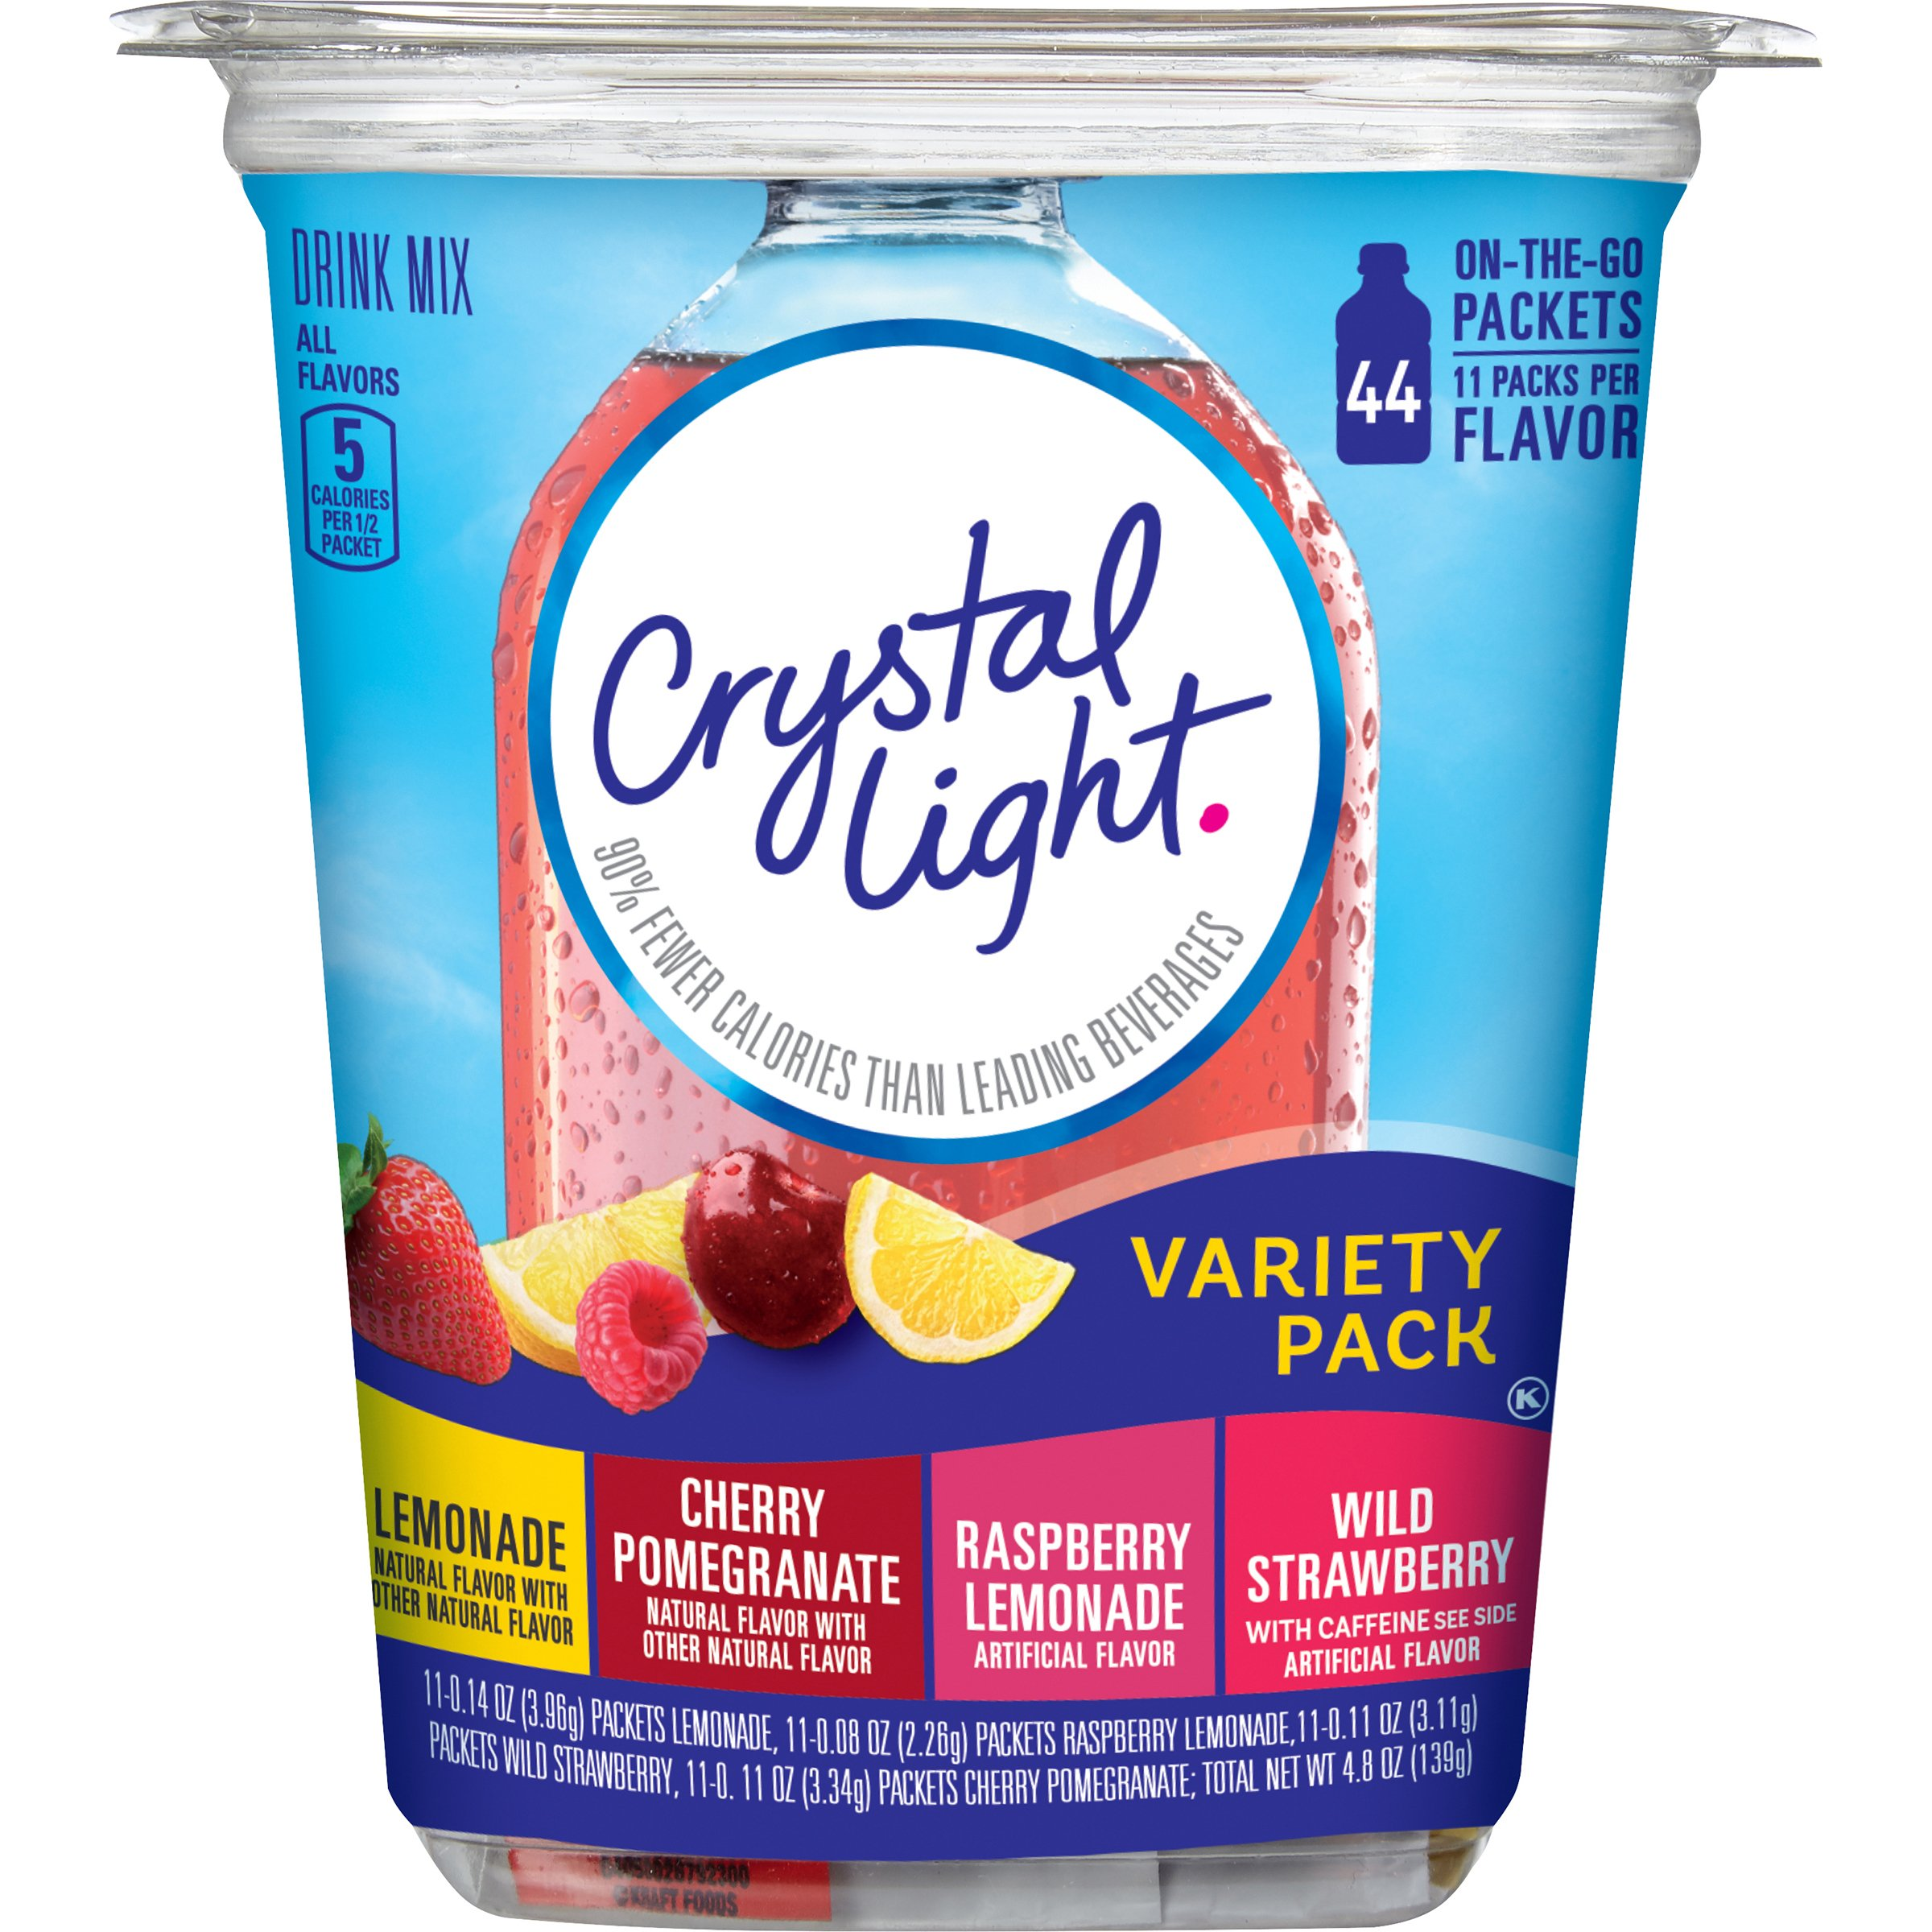 Crystal Light Drink Mix, Variety Pack, On The Go Packets, 44 Count